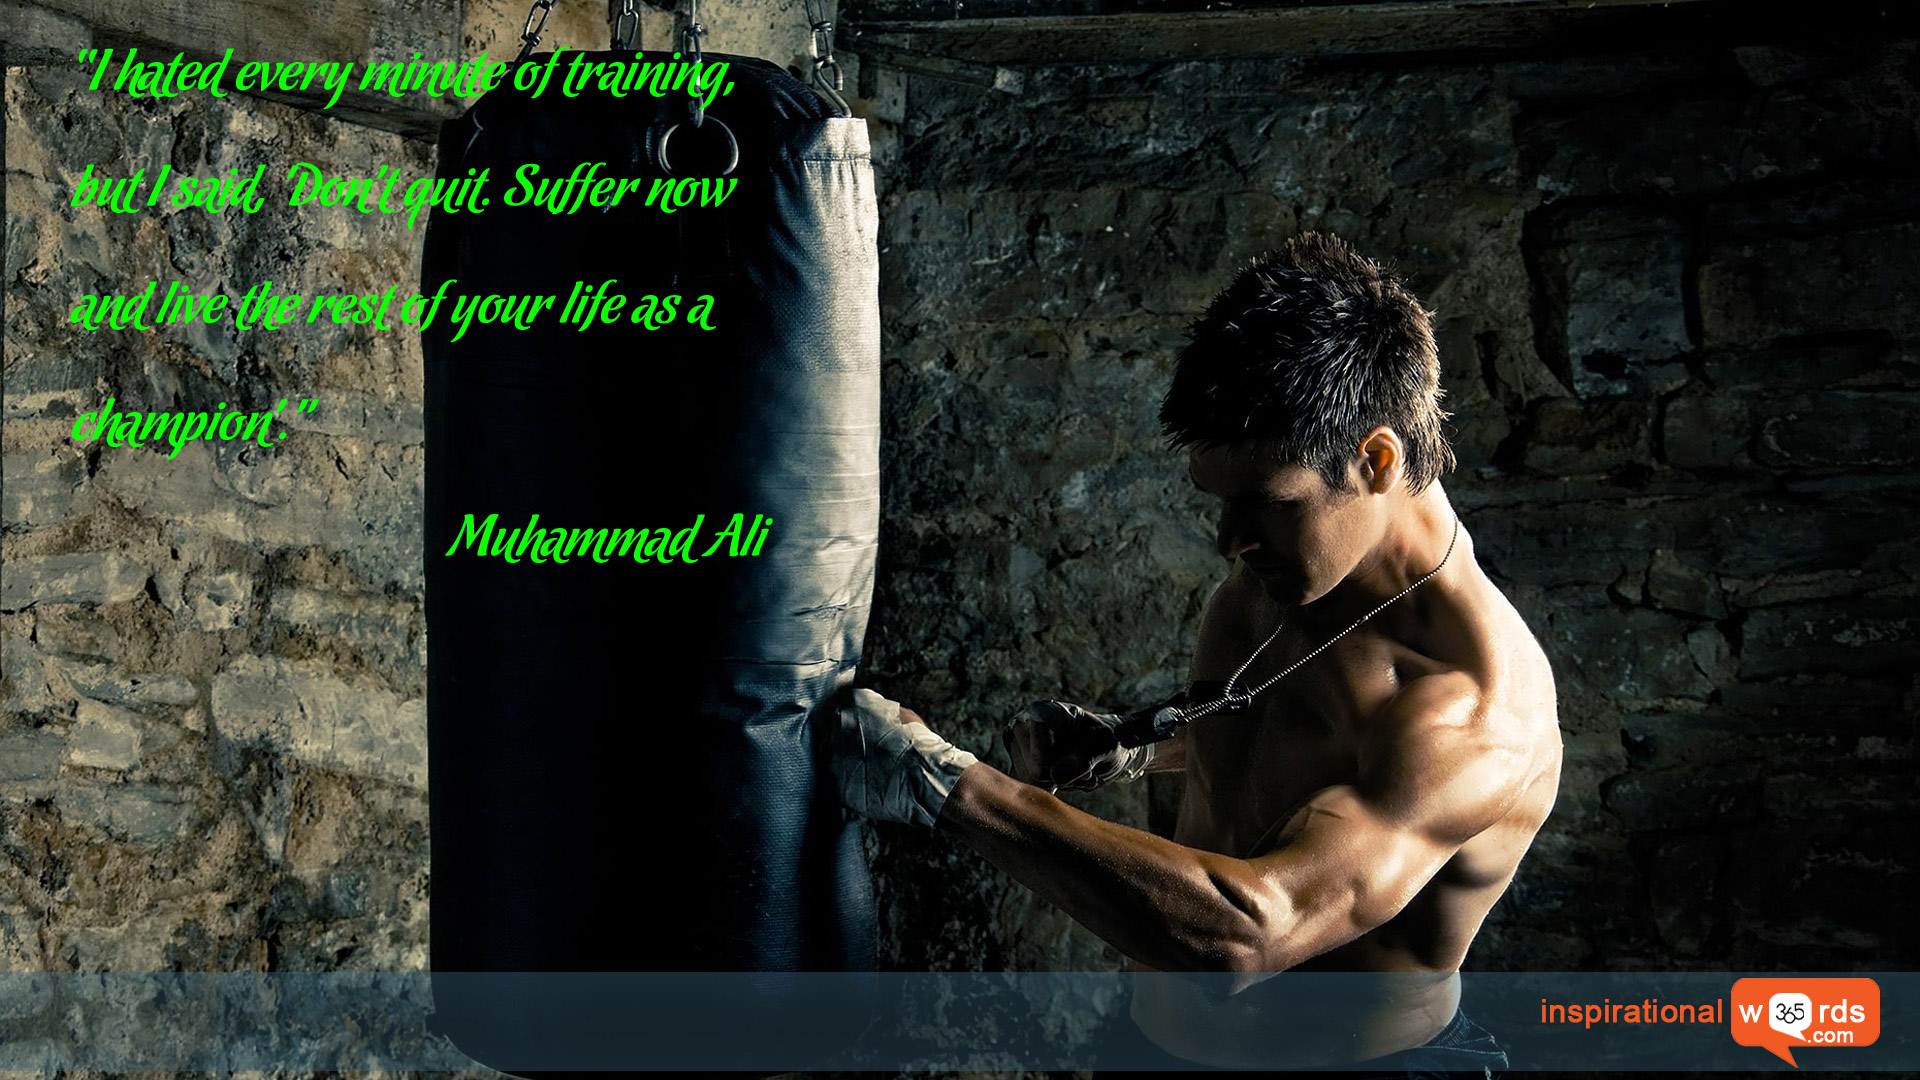 Inspirational Wallpaper Quote by Muhammad Ali